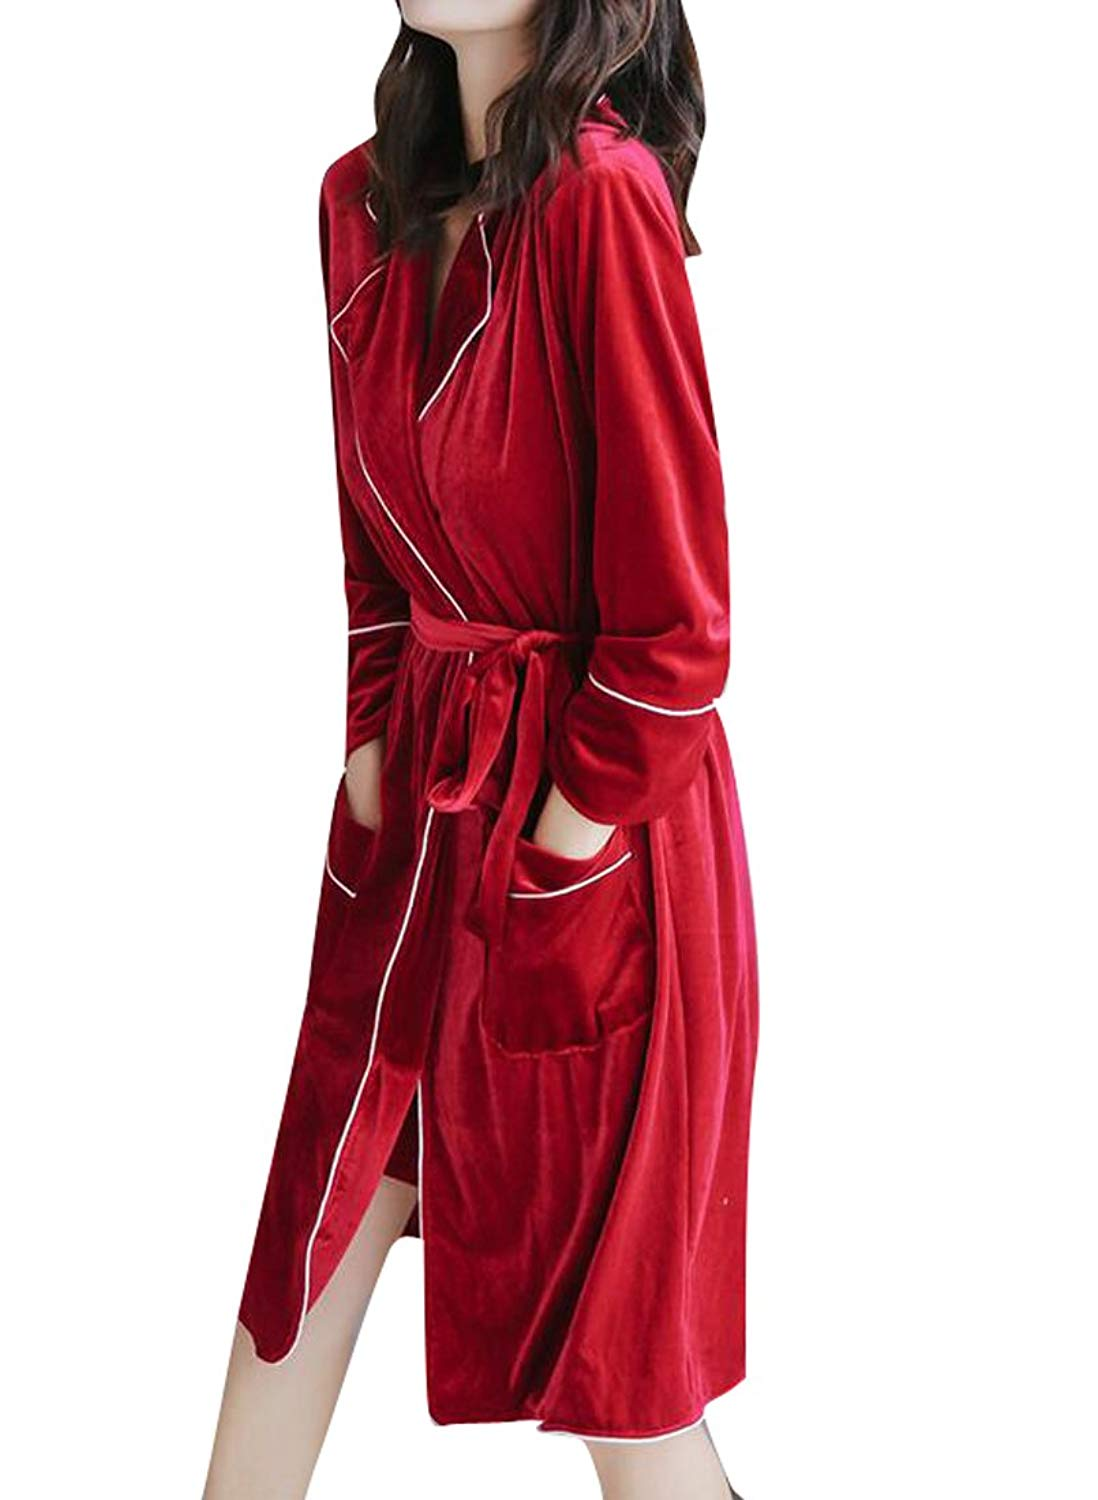 c9c4b8167d Get Quotations · Zago Womens Sexy Solid Velvet 2 Pieces Nightgowns and Robes  Pajama Sets